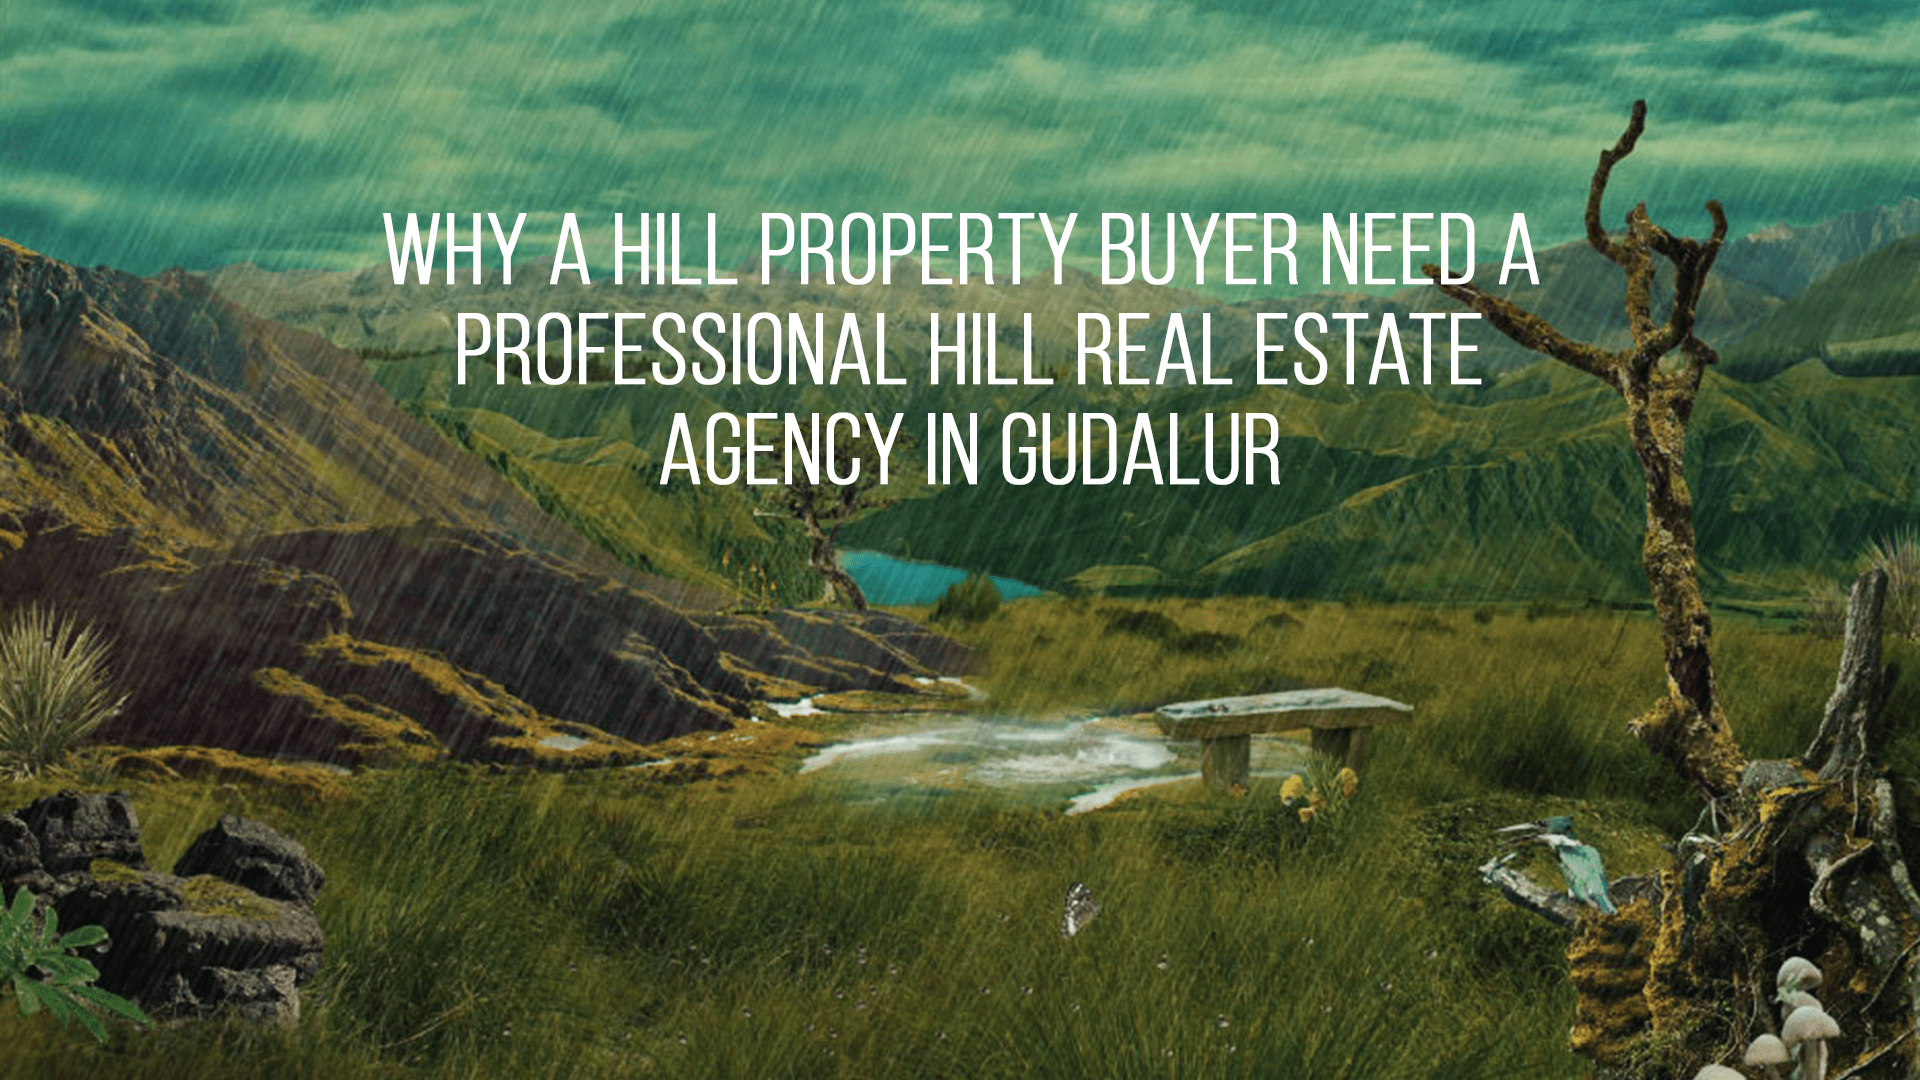 Why a Property Buyer need A  Professional Hill Real Estate Agency Gudalur?